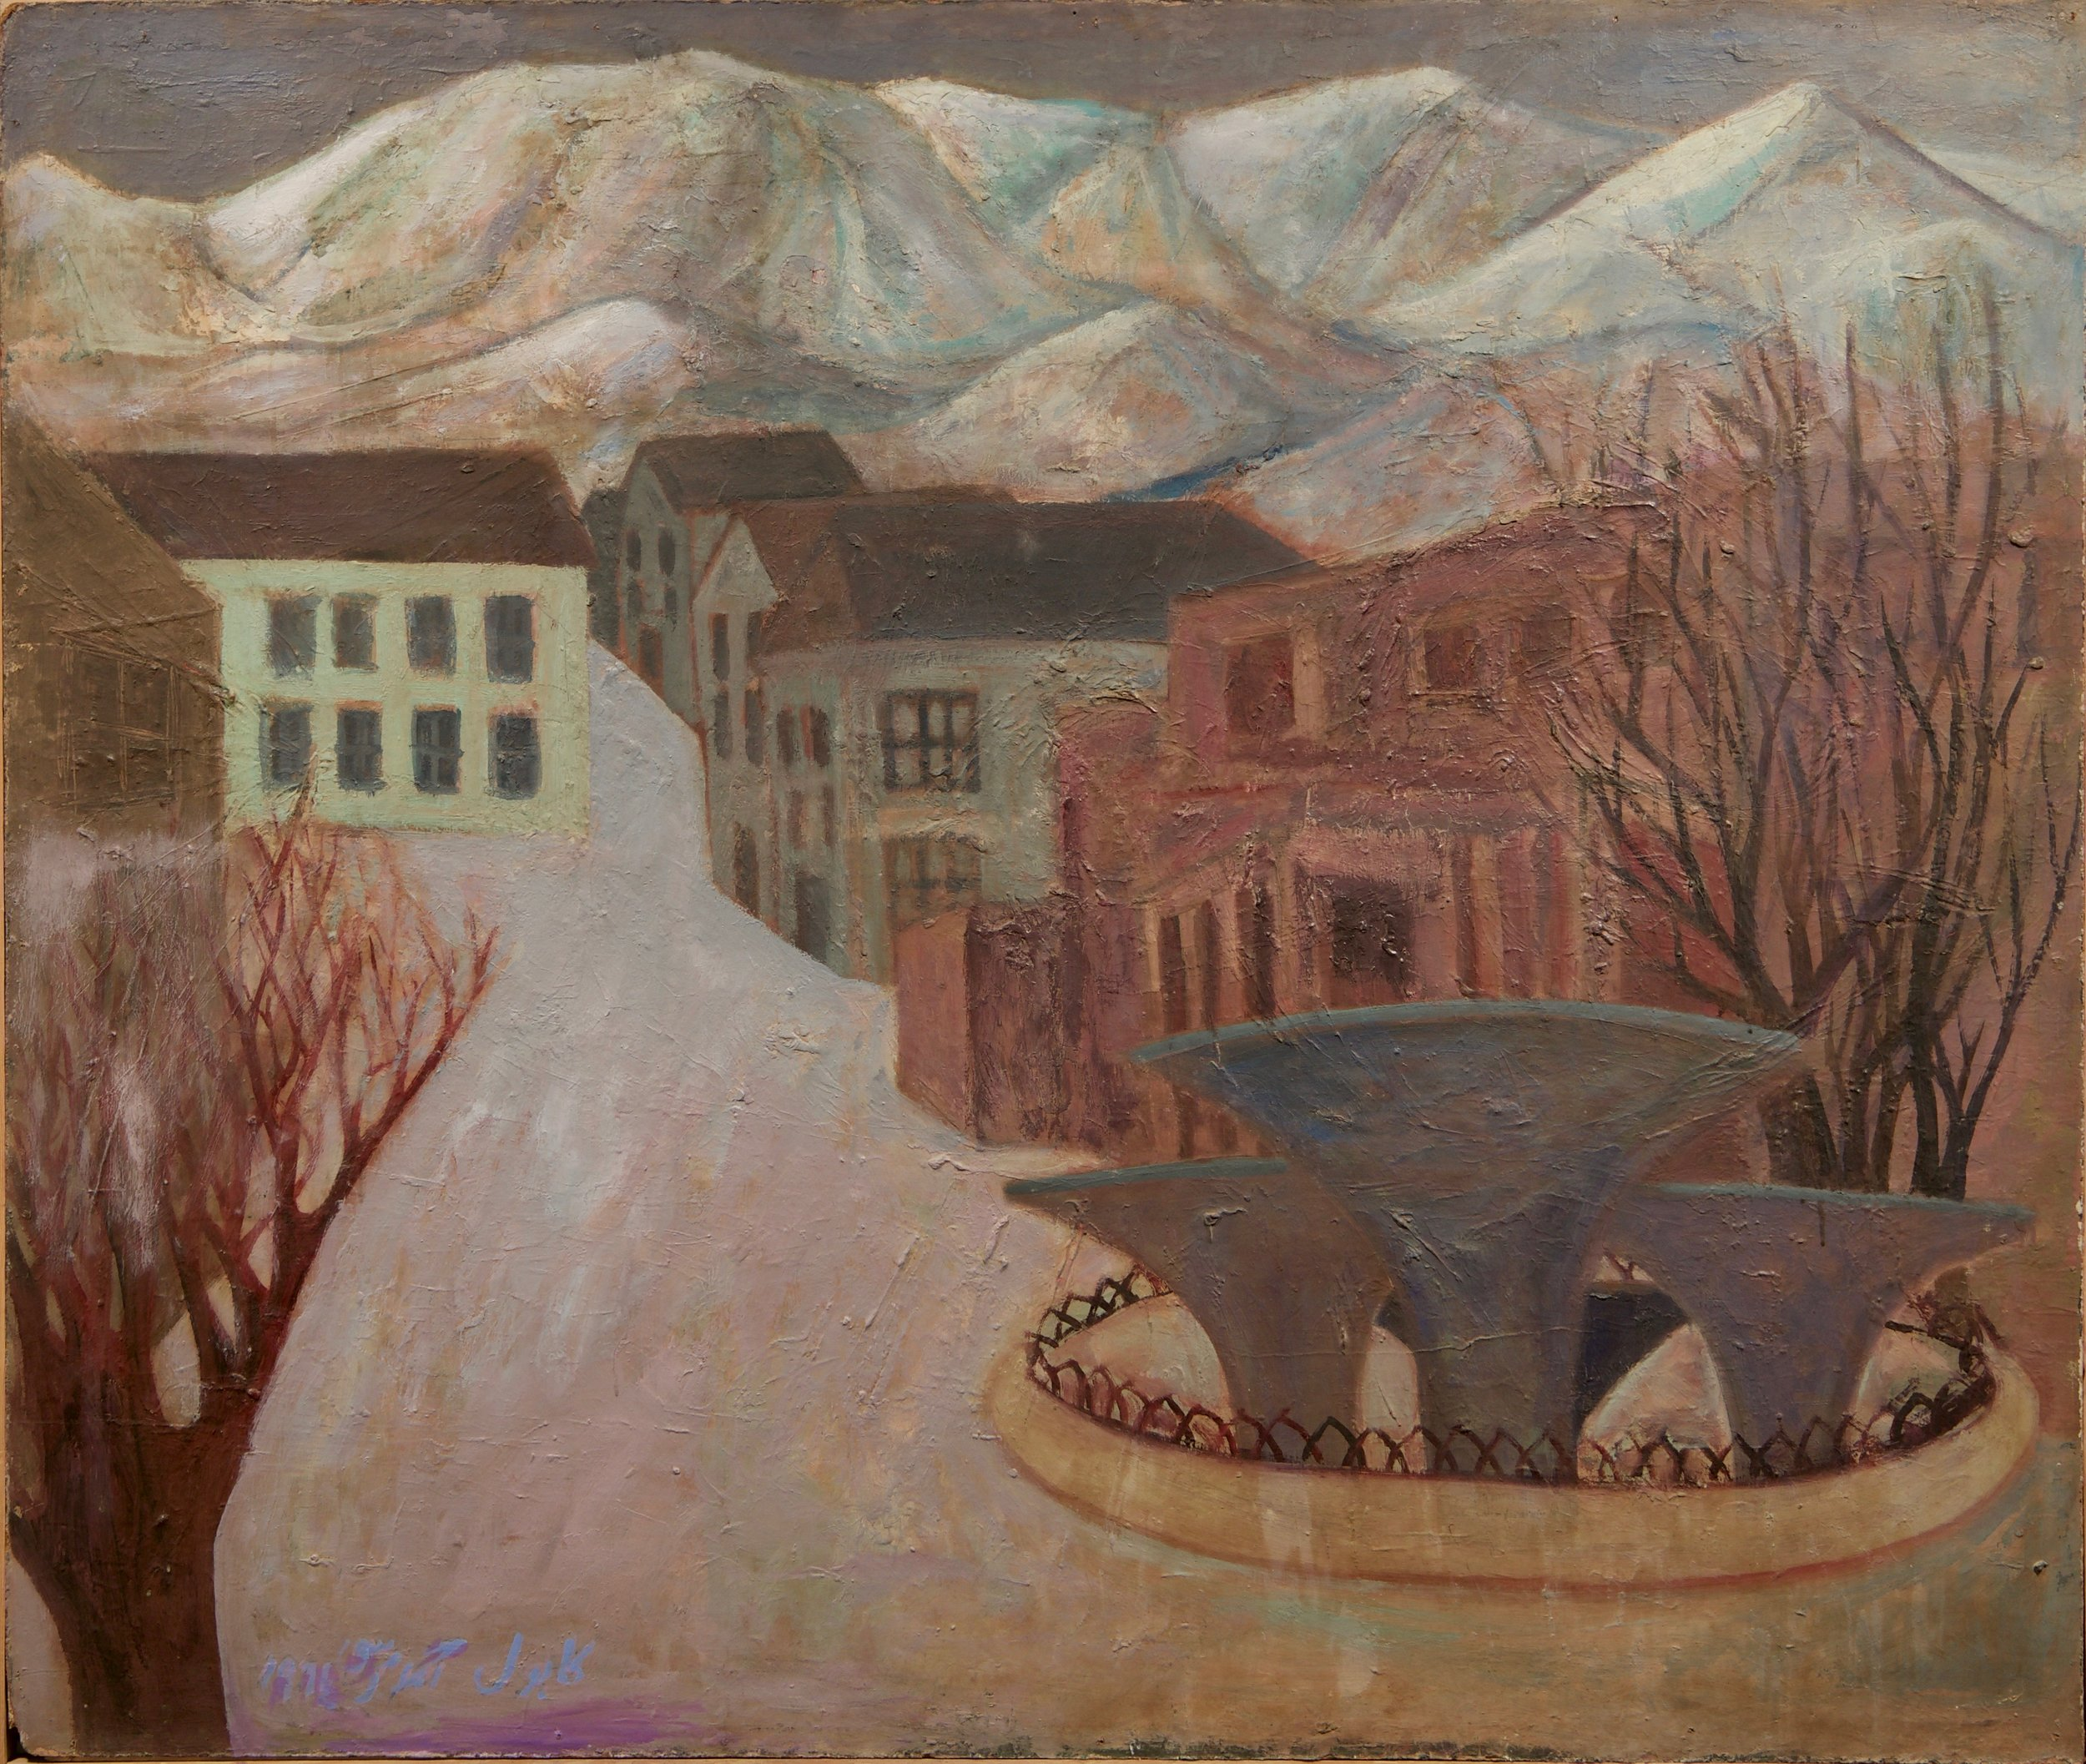 Ahmed-Morsi-Landscape-(Kabul-Winter)-1964.jpg